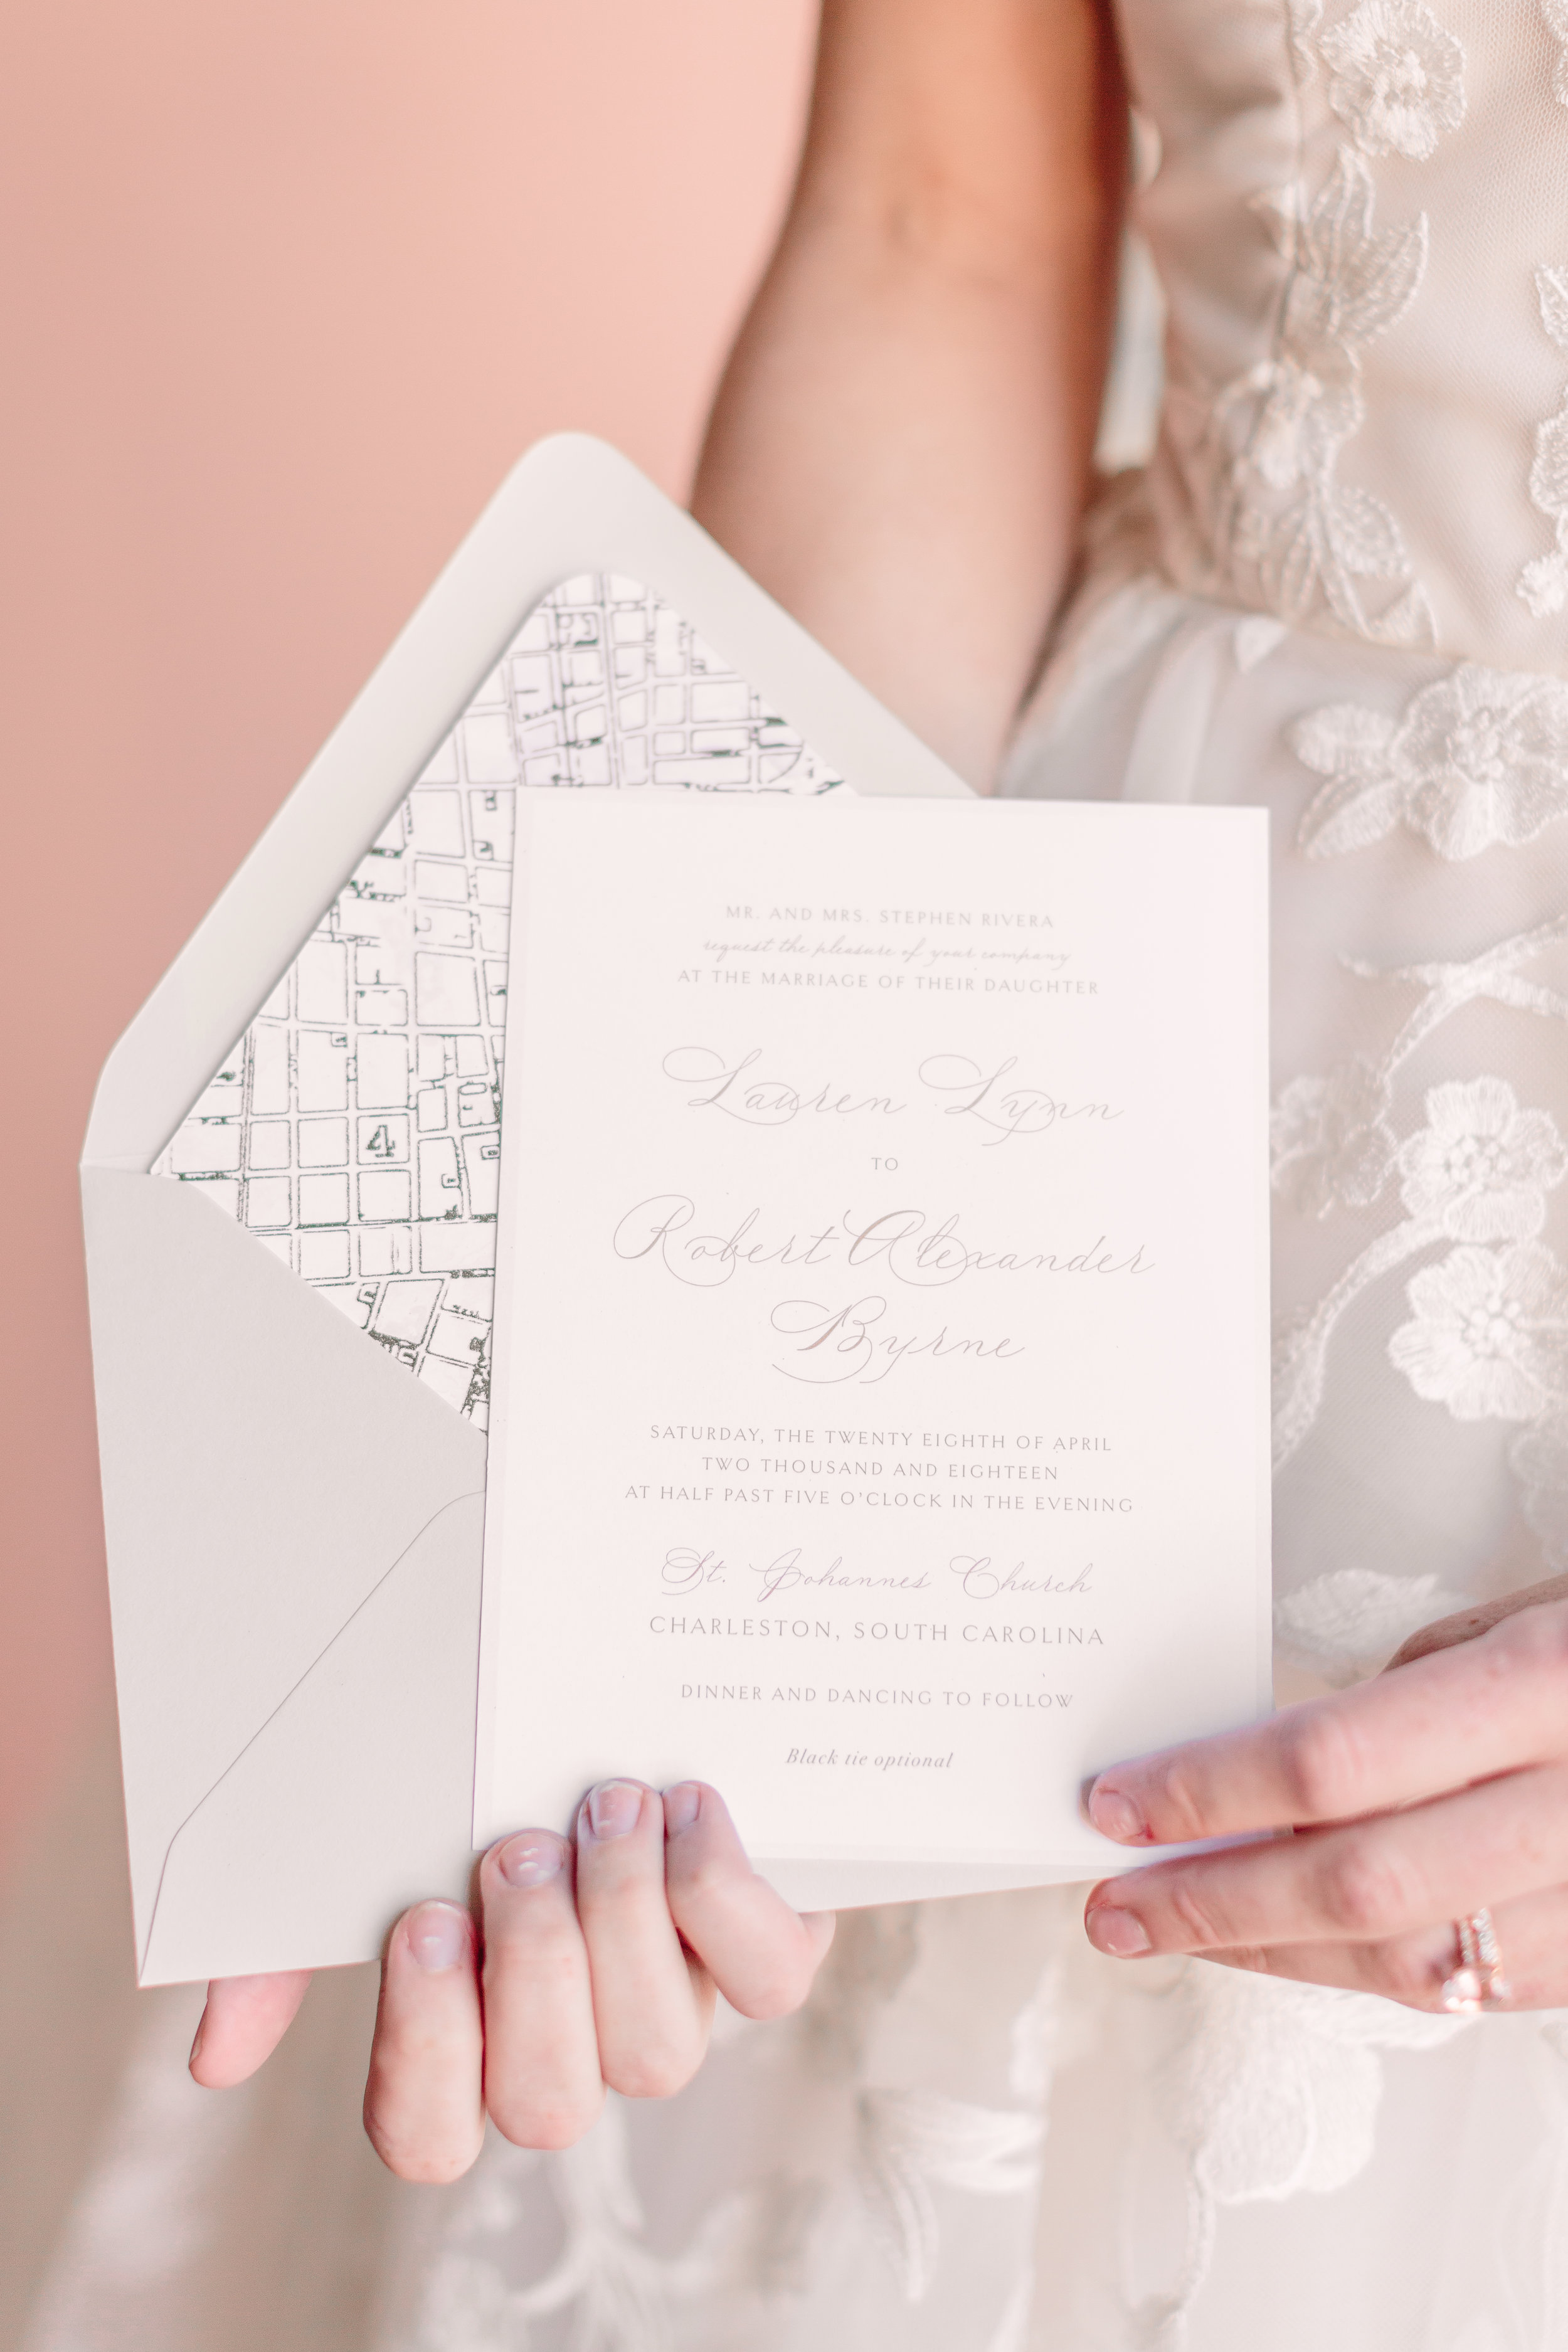 charleston-artists-wedding-invitation-with-map-third-clover-paper-lauren-myers-photography.jpg